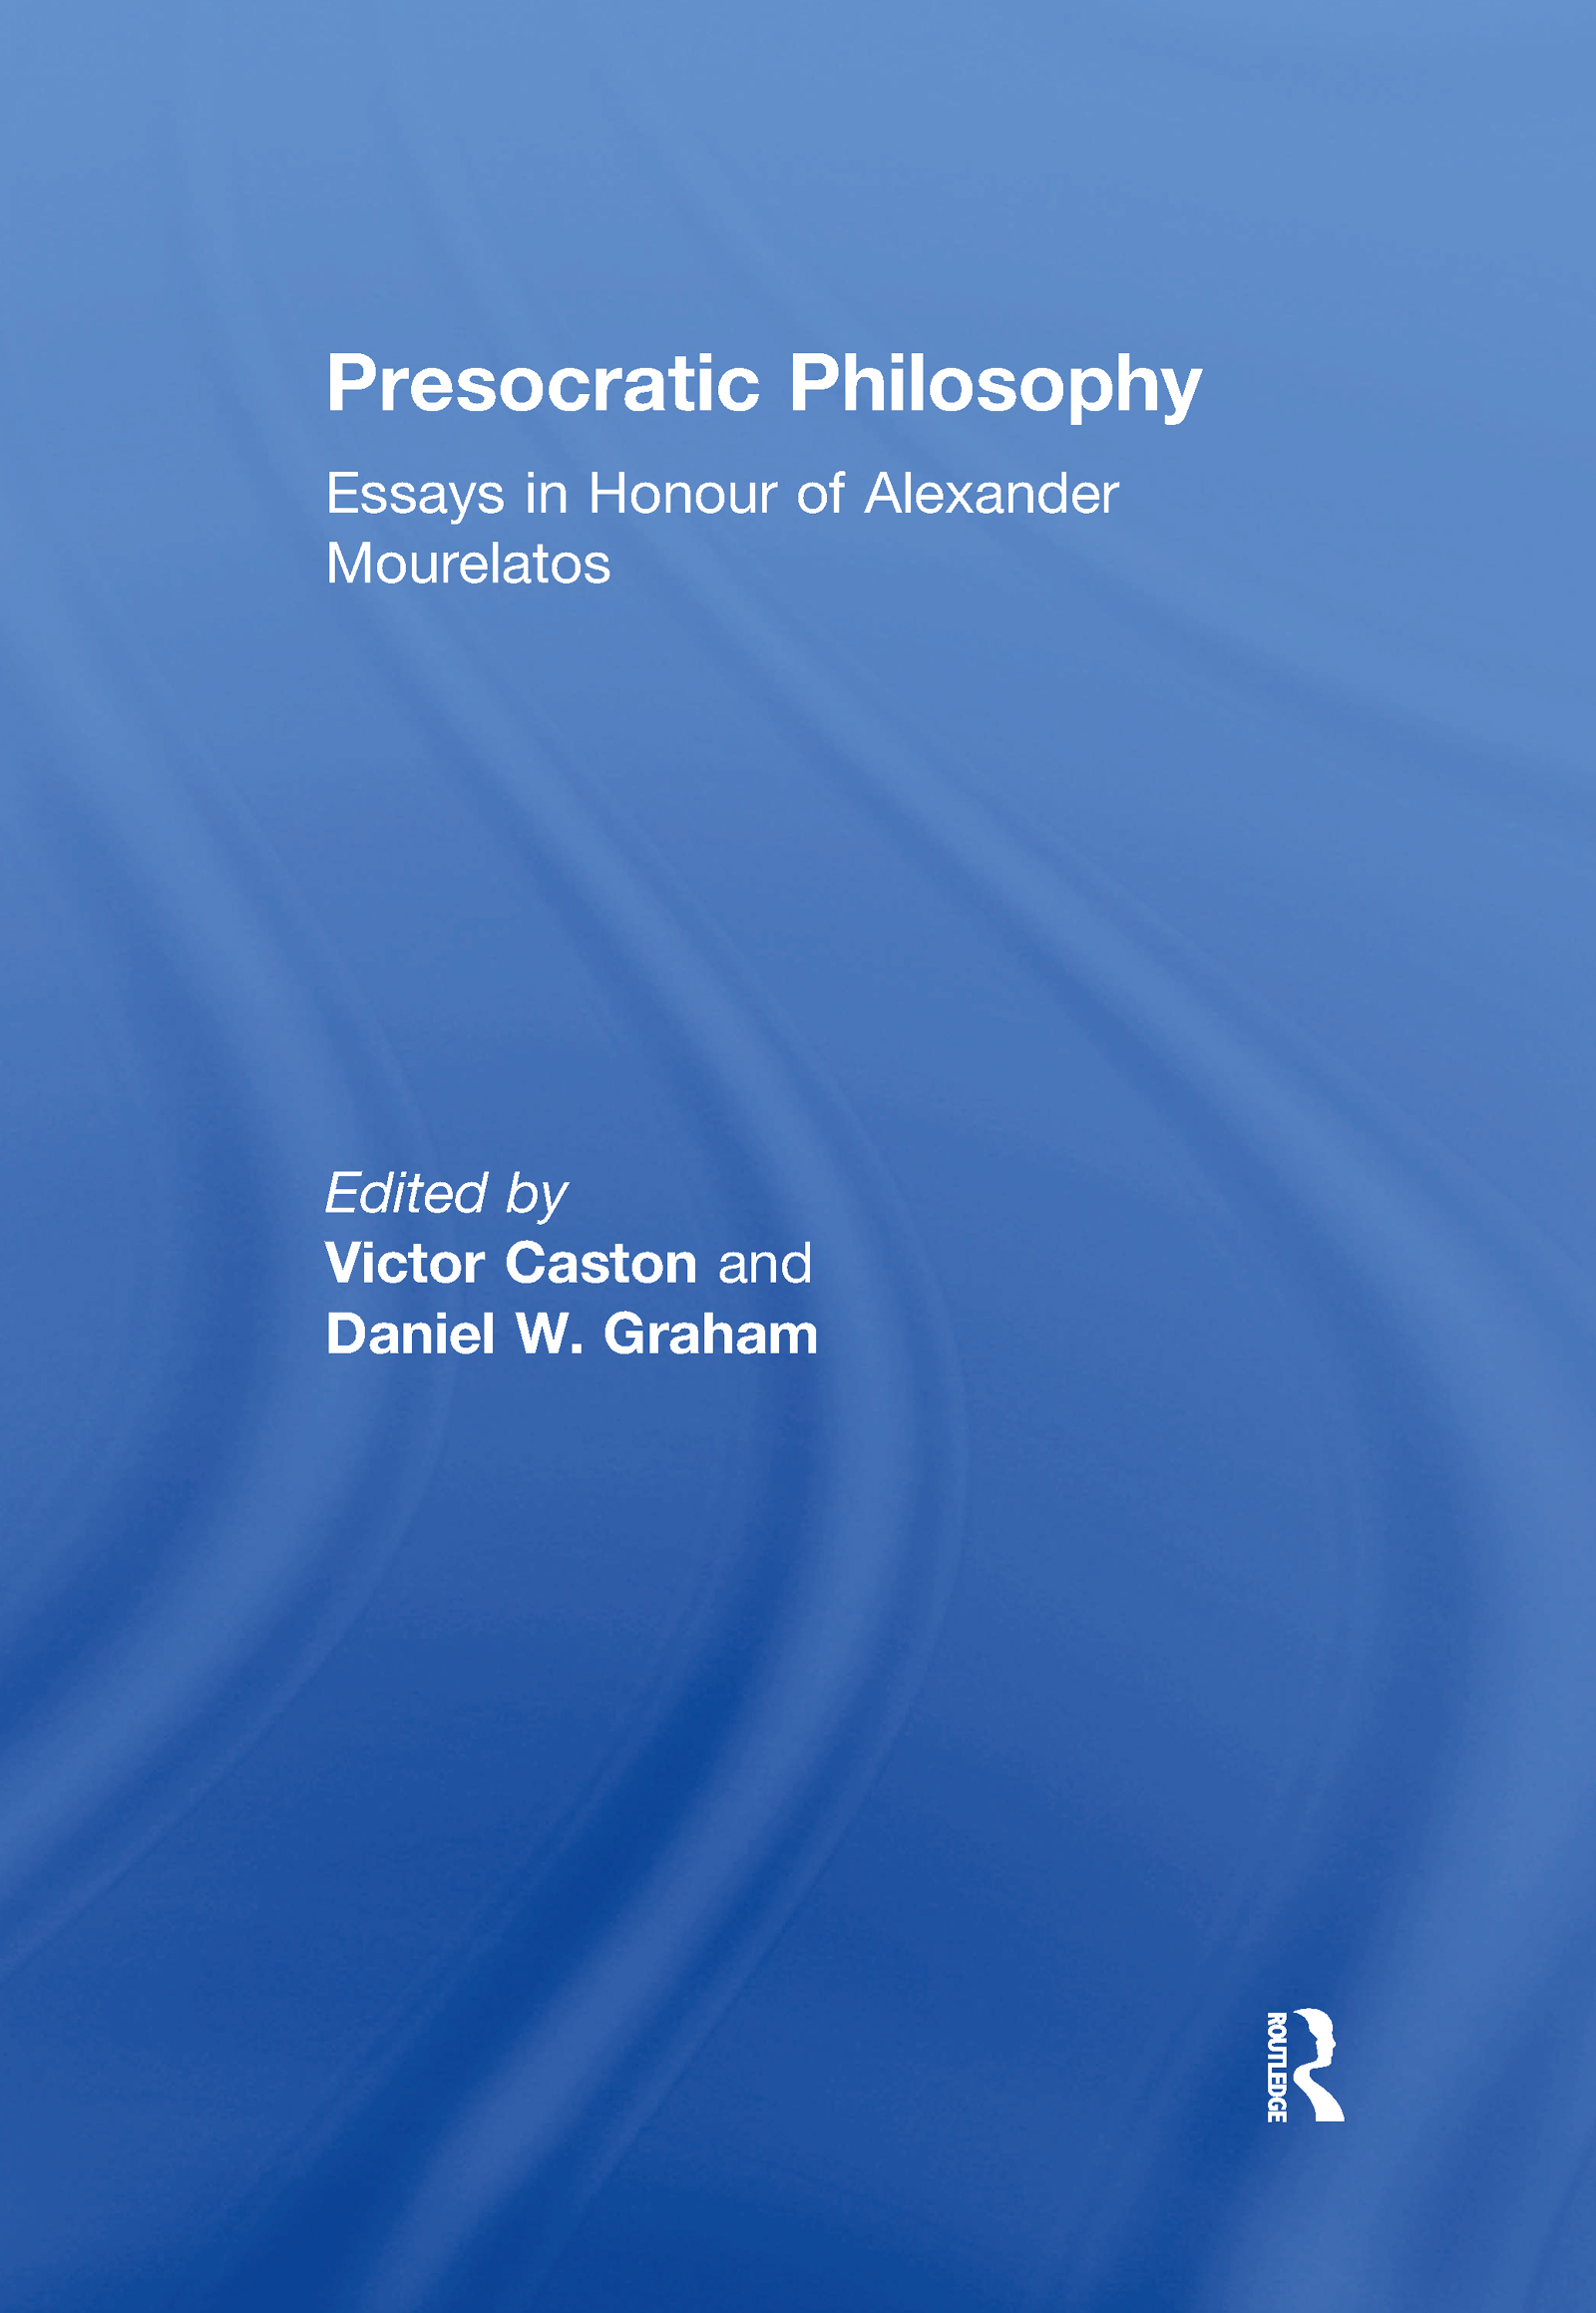 the pre socratic tradition and socratic philosophy essay The pre-socratic philosophers | pre-socratic is the expression commonly used to describe those greek thinkers who lived and wrote between 600 and 400 bc it was the pre-socratics who attempted to find universal principles which would explain the natural world from its origins to man's place in it.